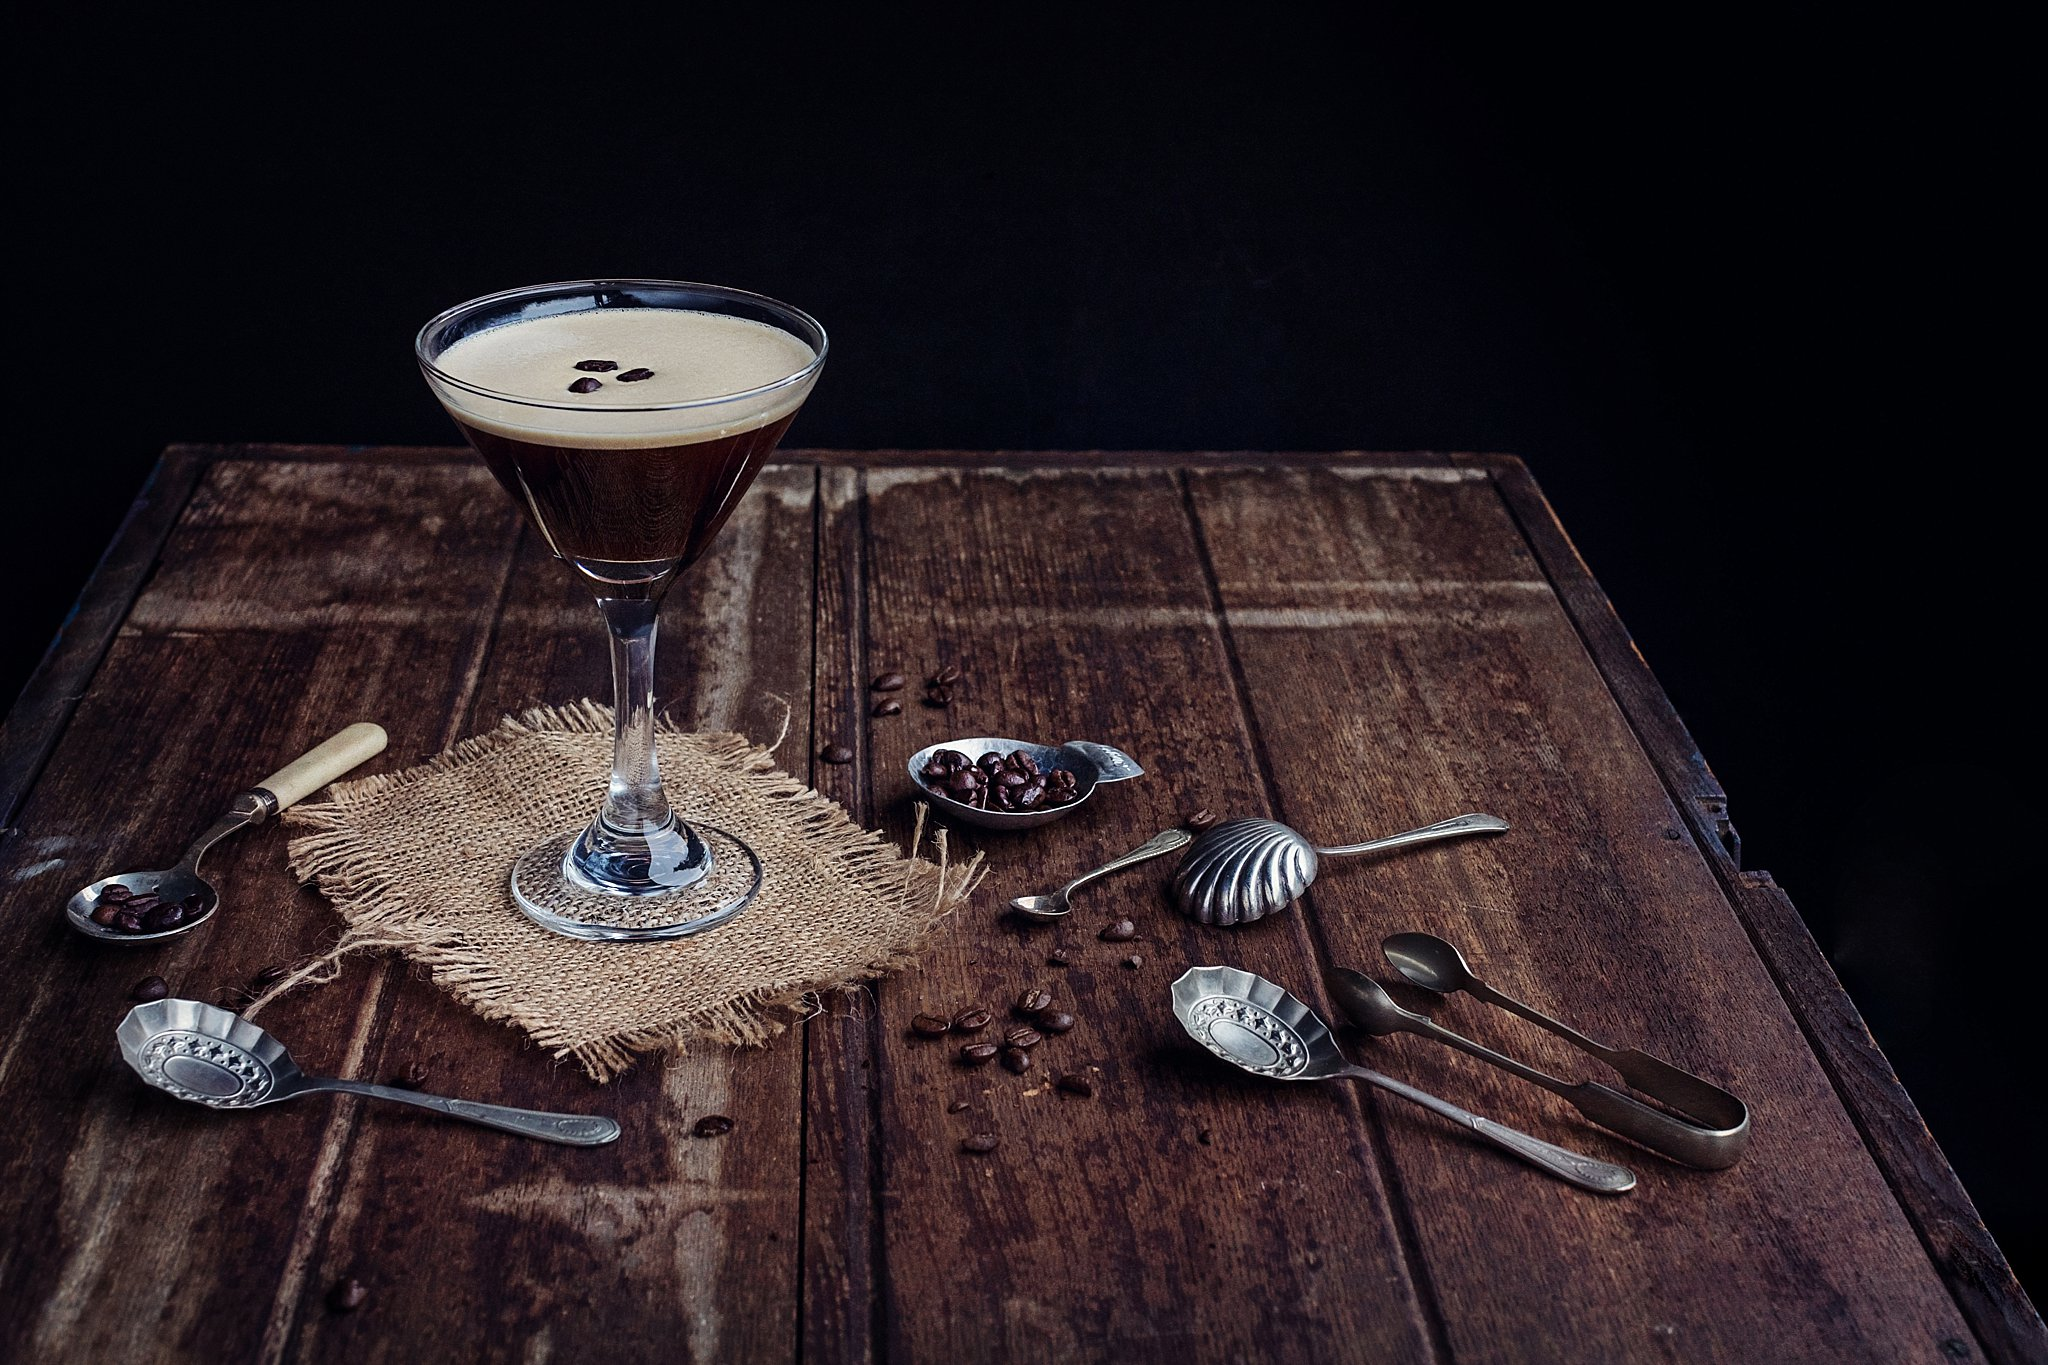 Coffee Martini with coffee beans around